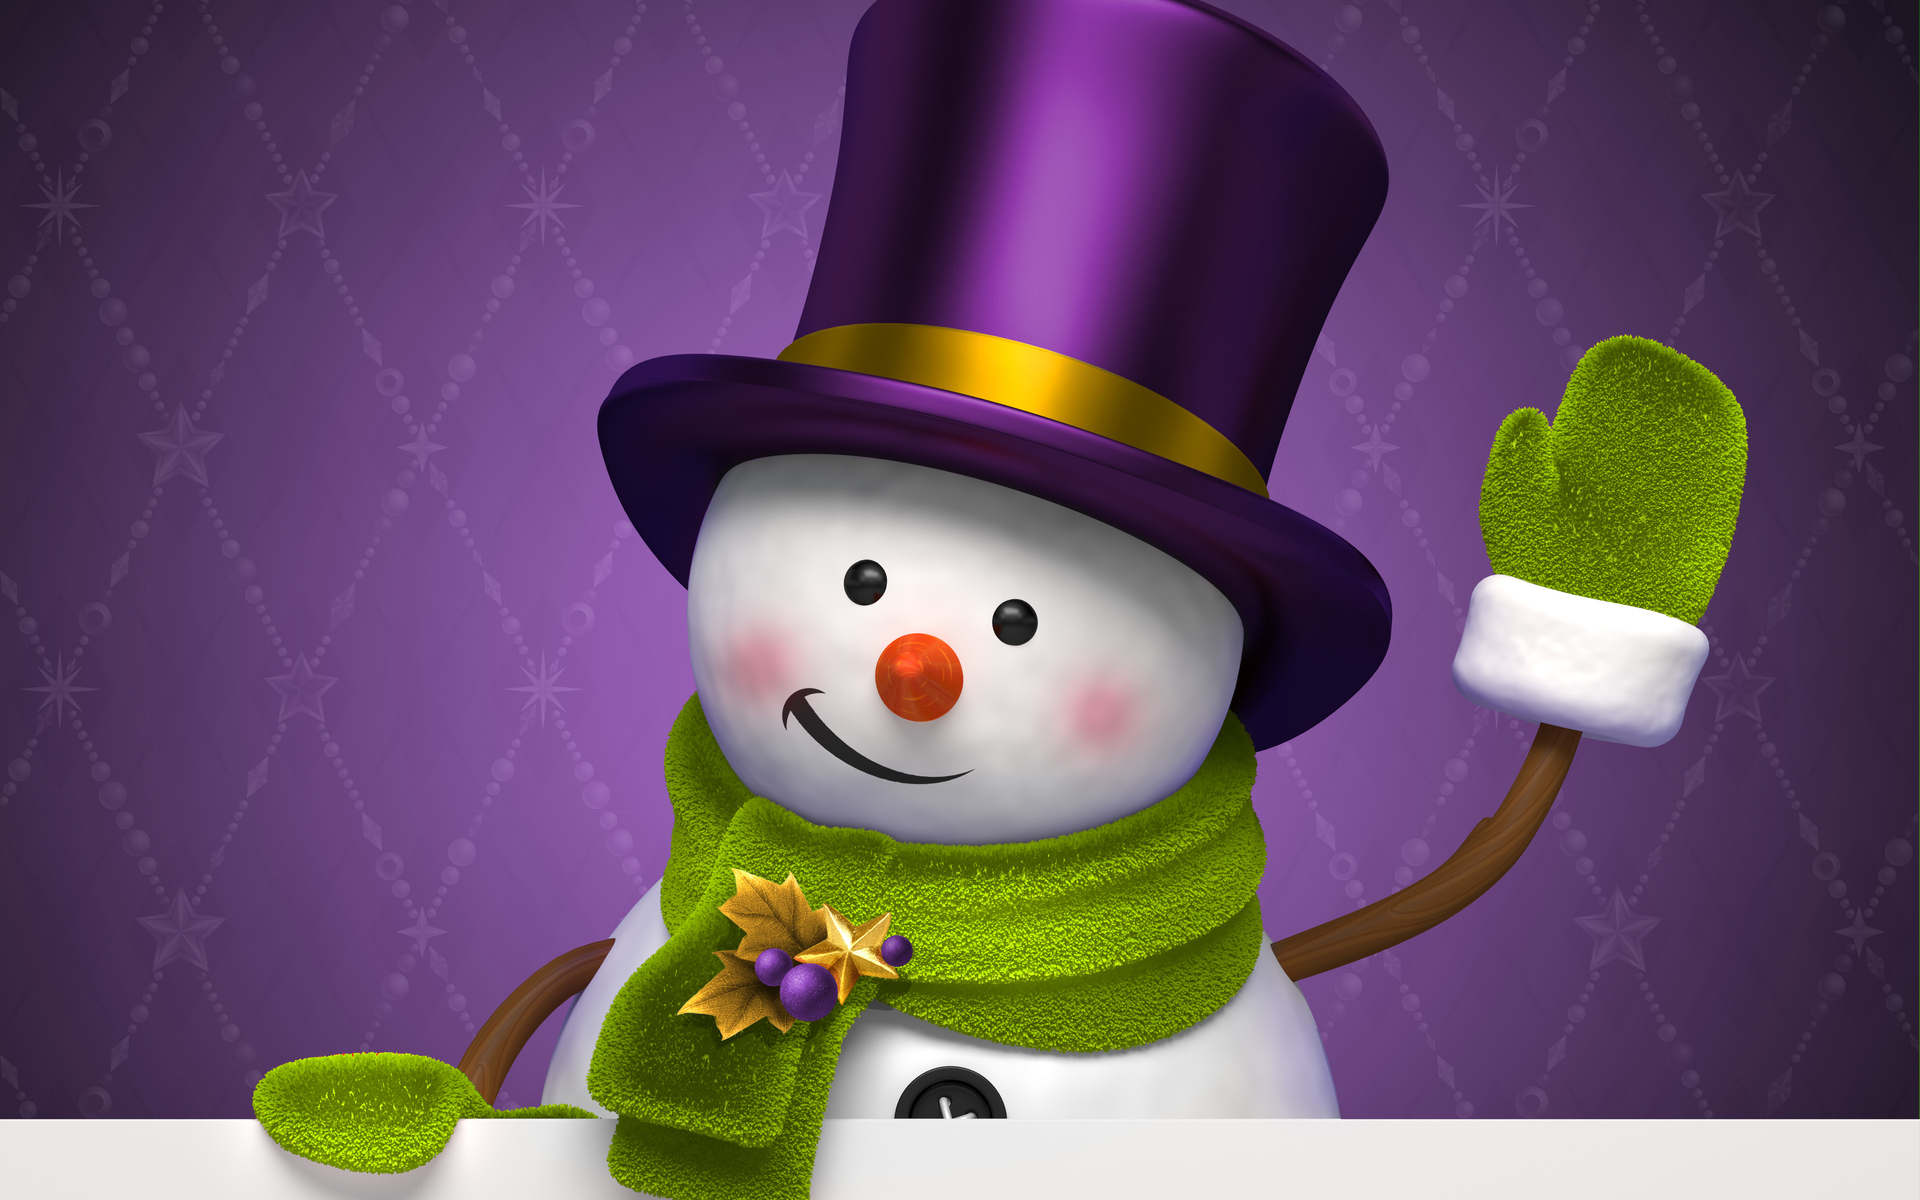 Snowman Wallpapers Pictures Images